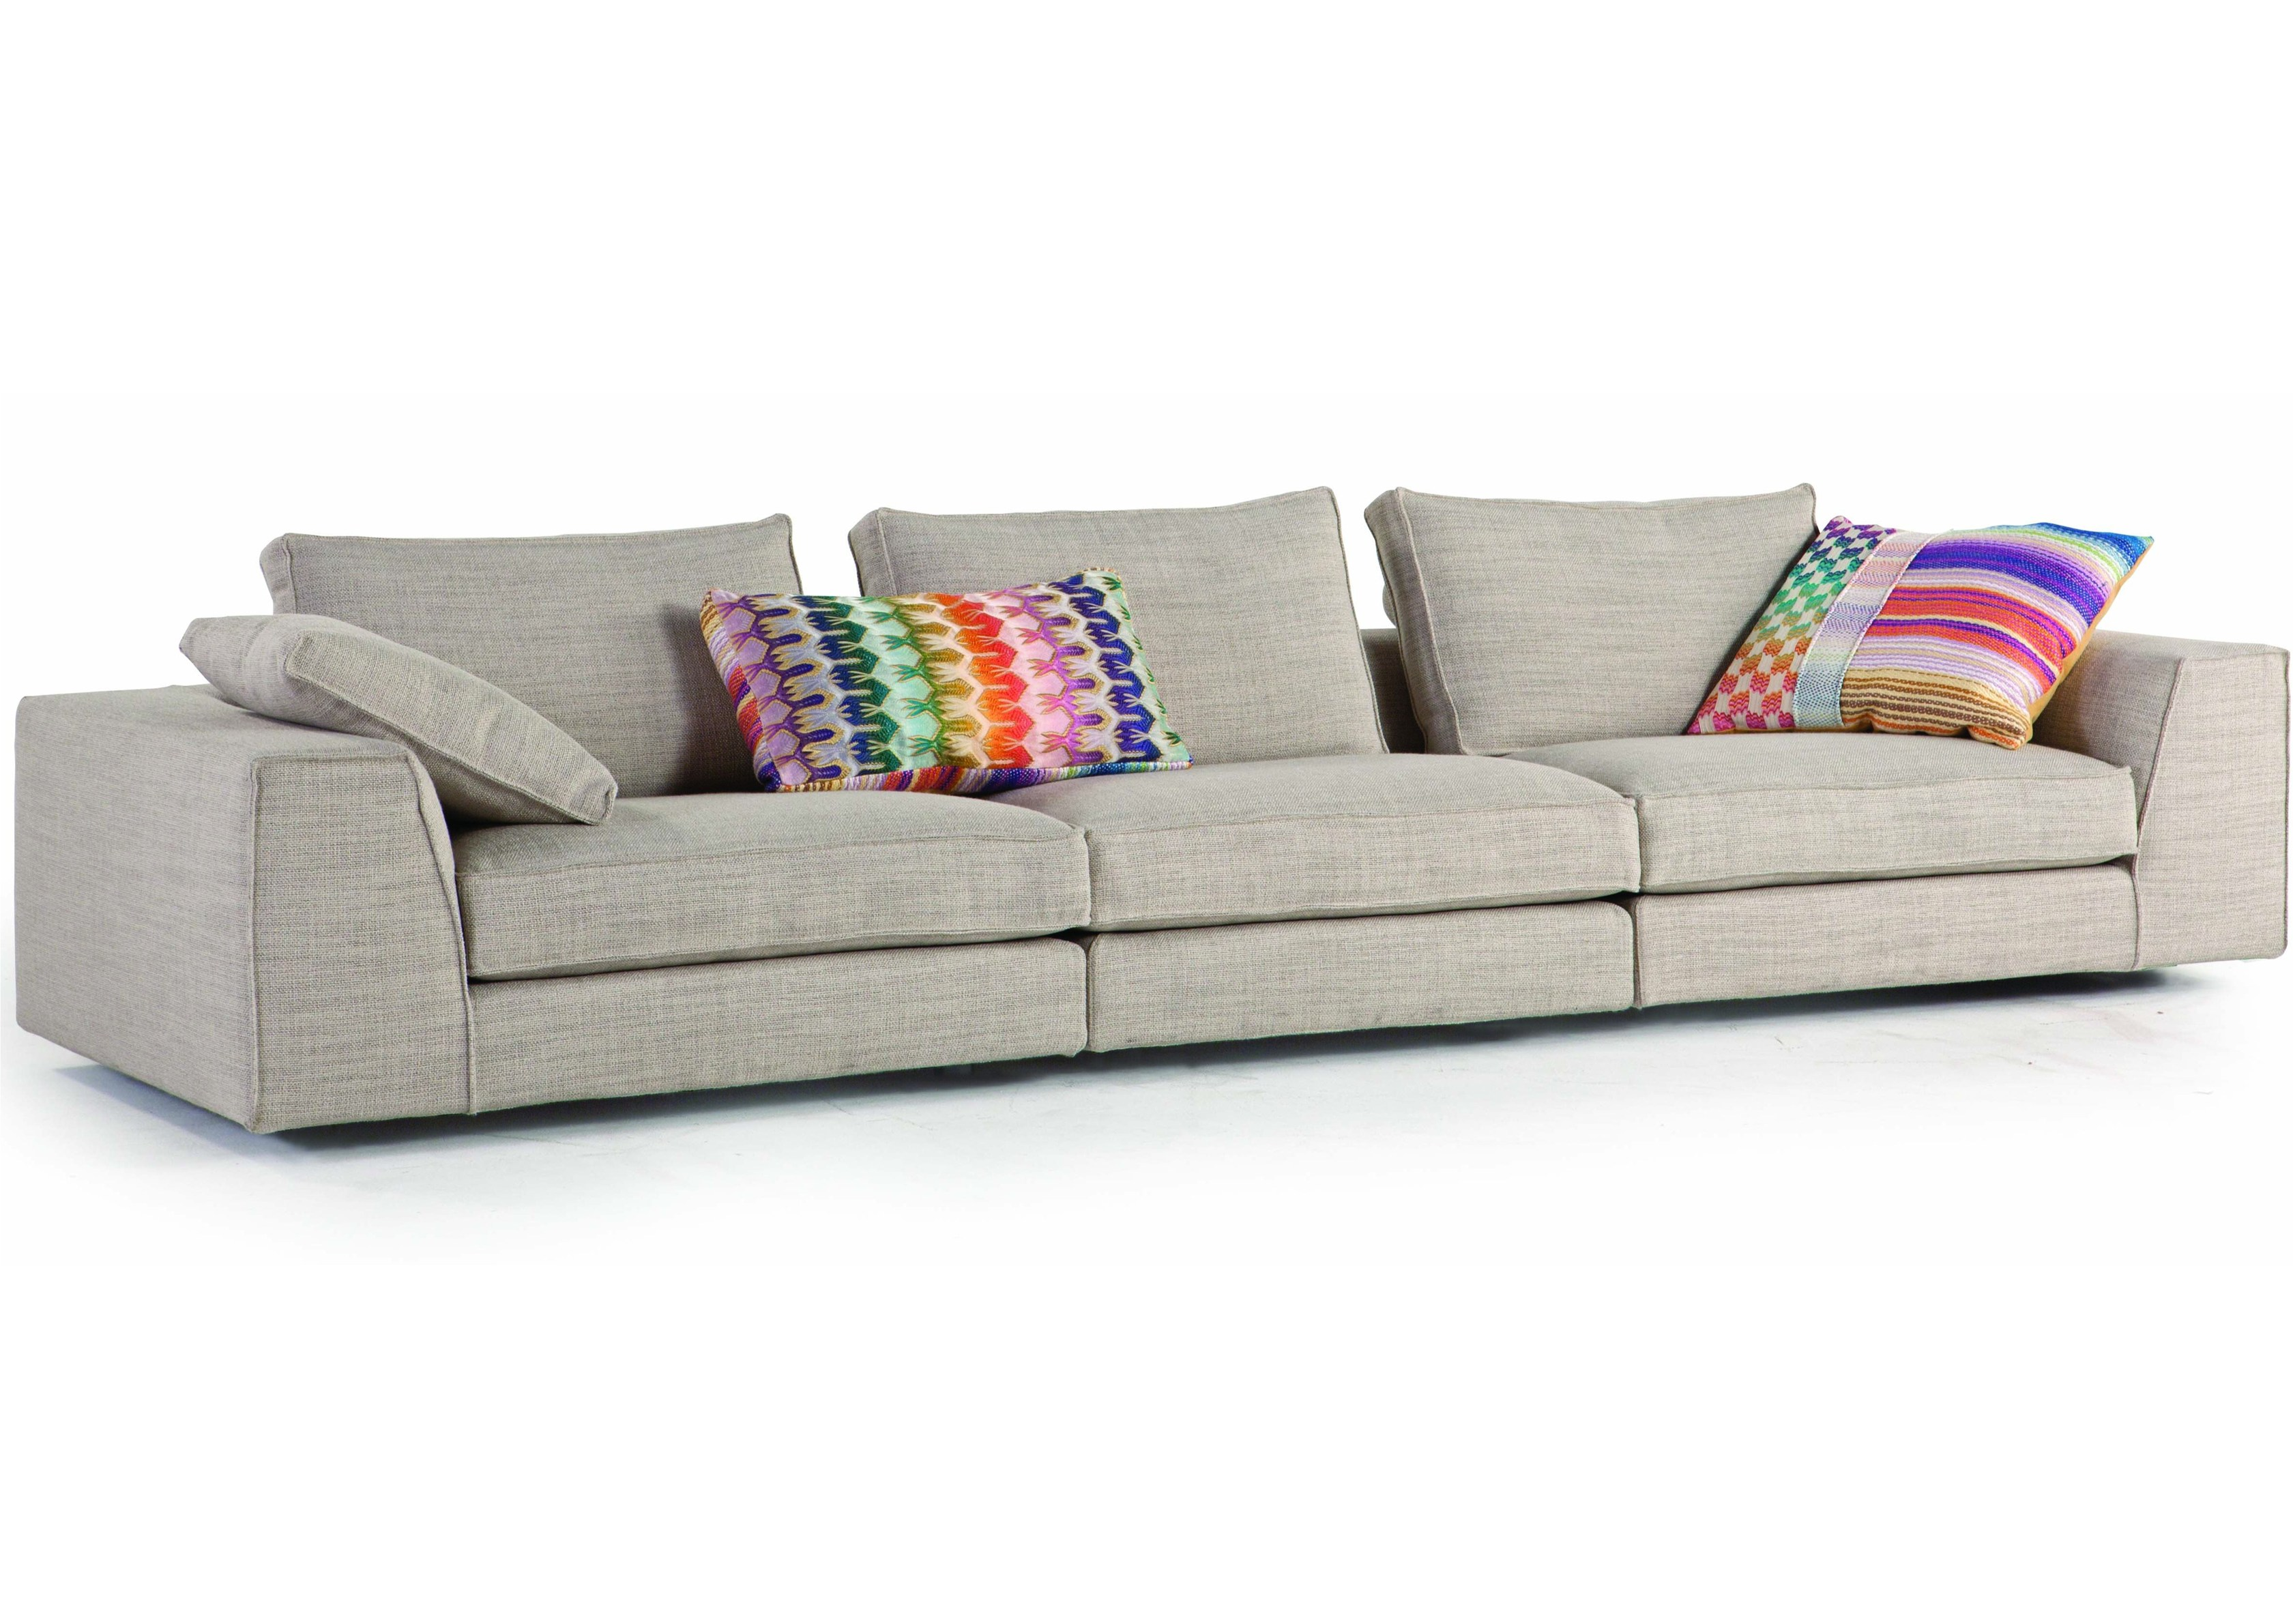 Roche bobois sofa prices roche bobois sofa prices thesofa for Canape roche bobois